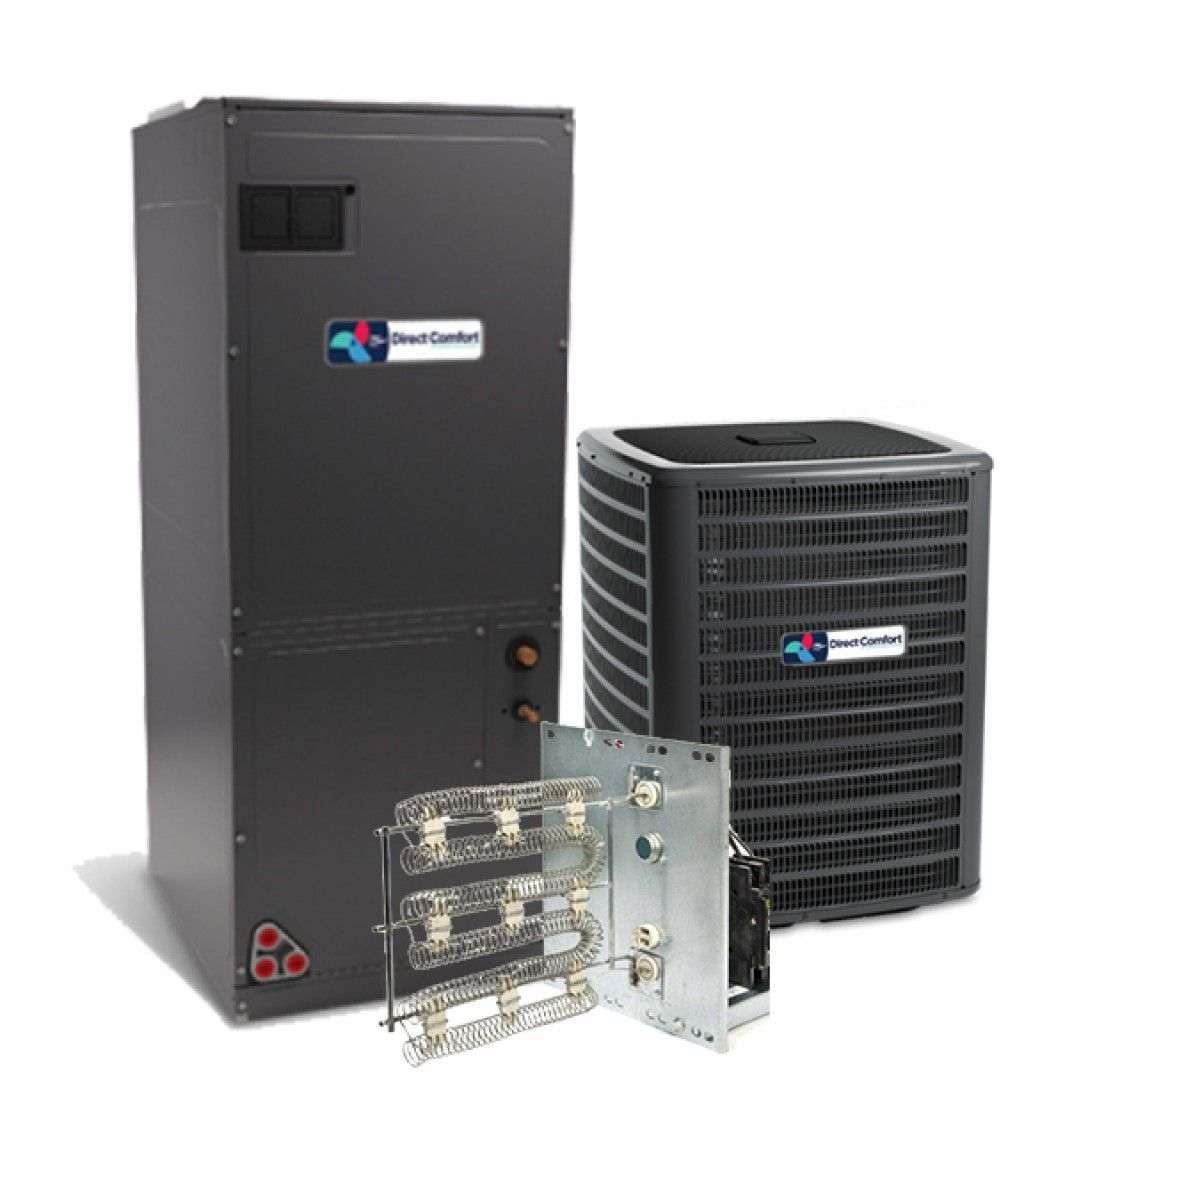 Heat Pump Systems : Direct comfort ton seer heat pump system two stage